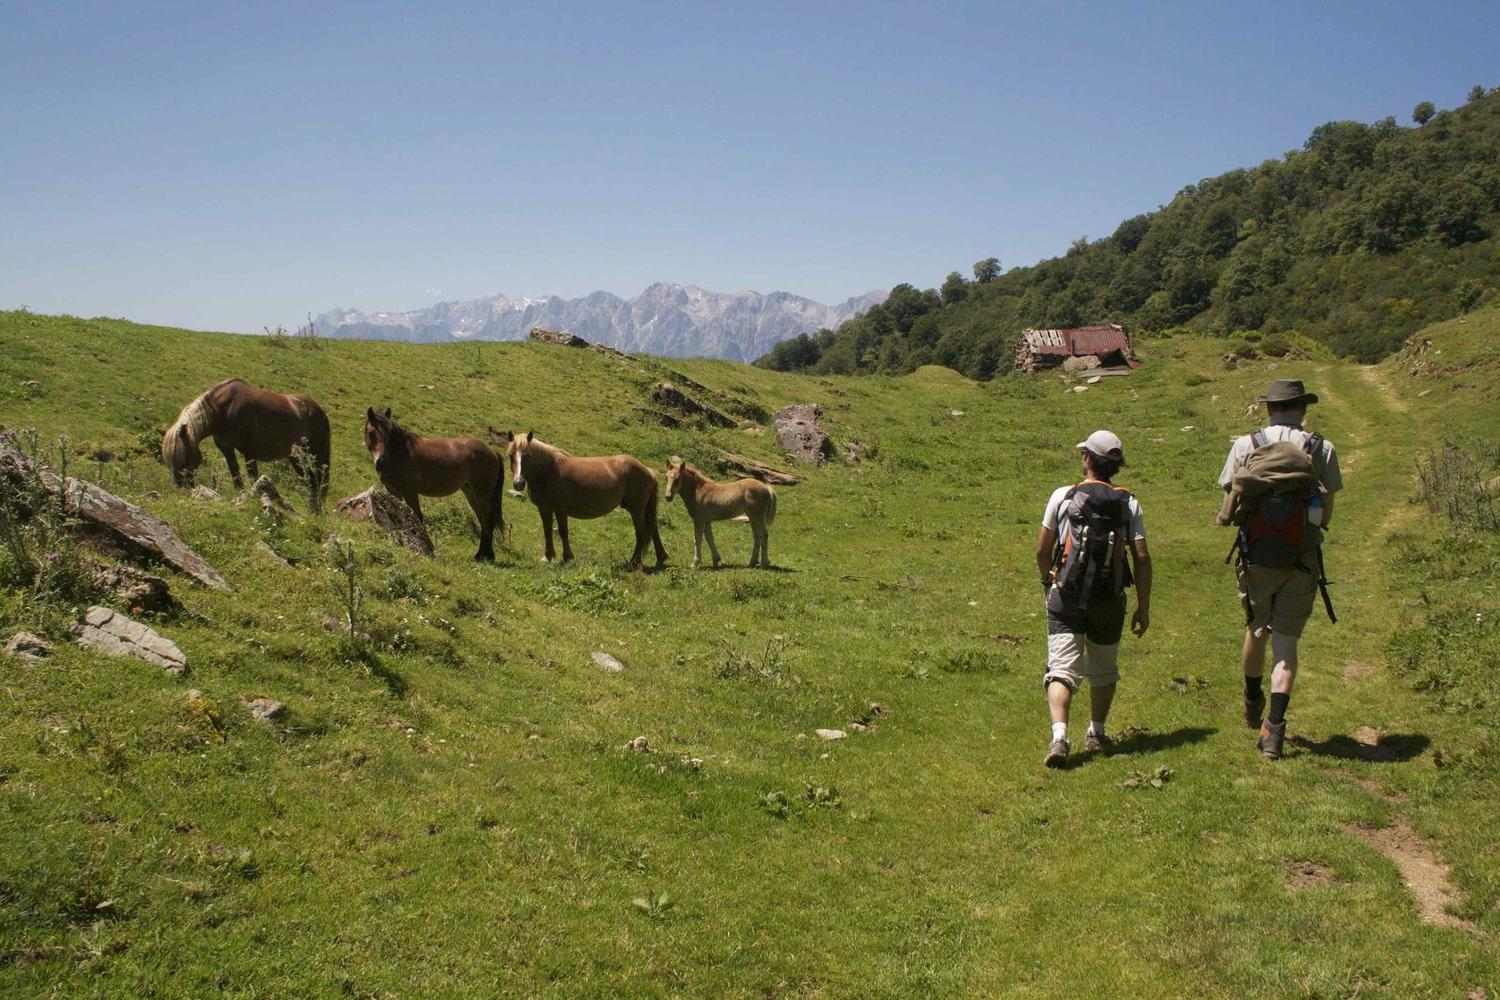 Walking across the high pastures of the Picos de Europa National Park in northern Spain